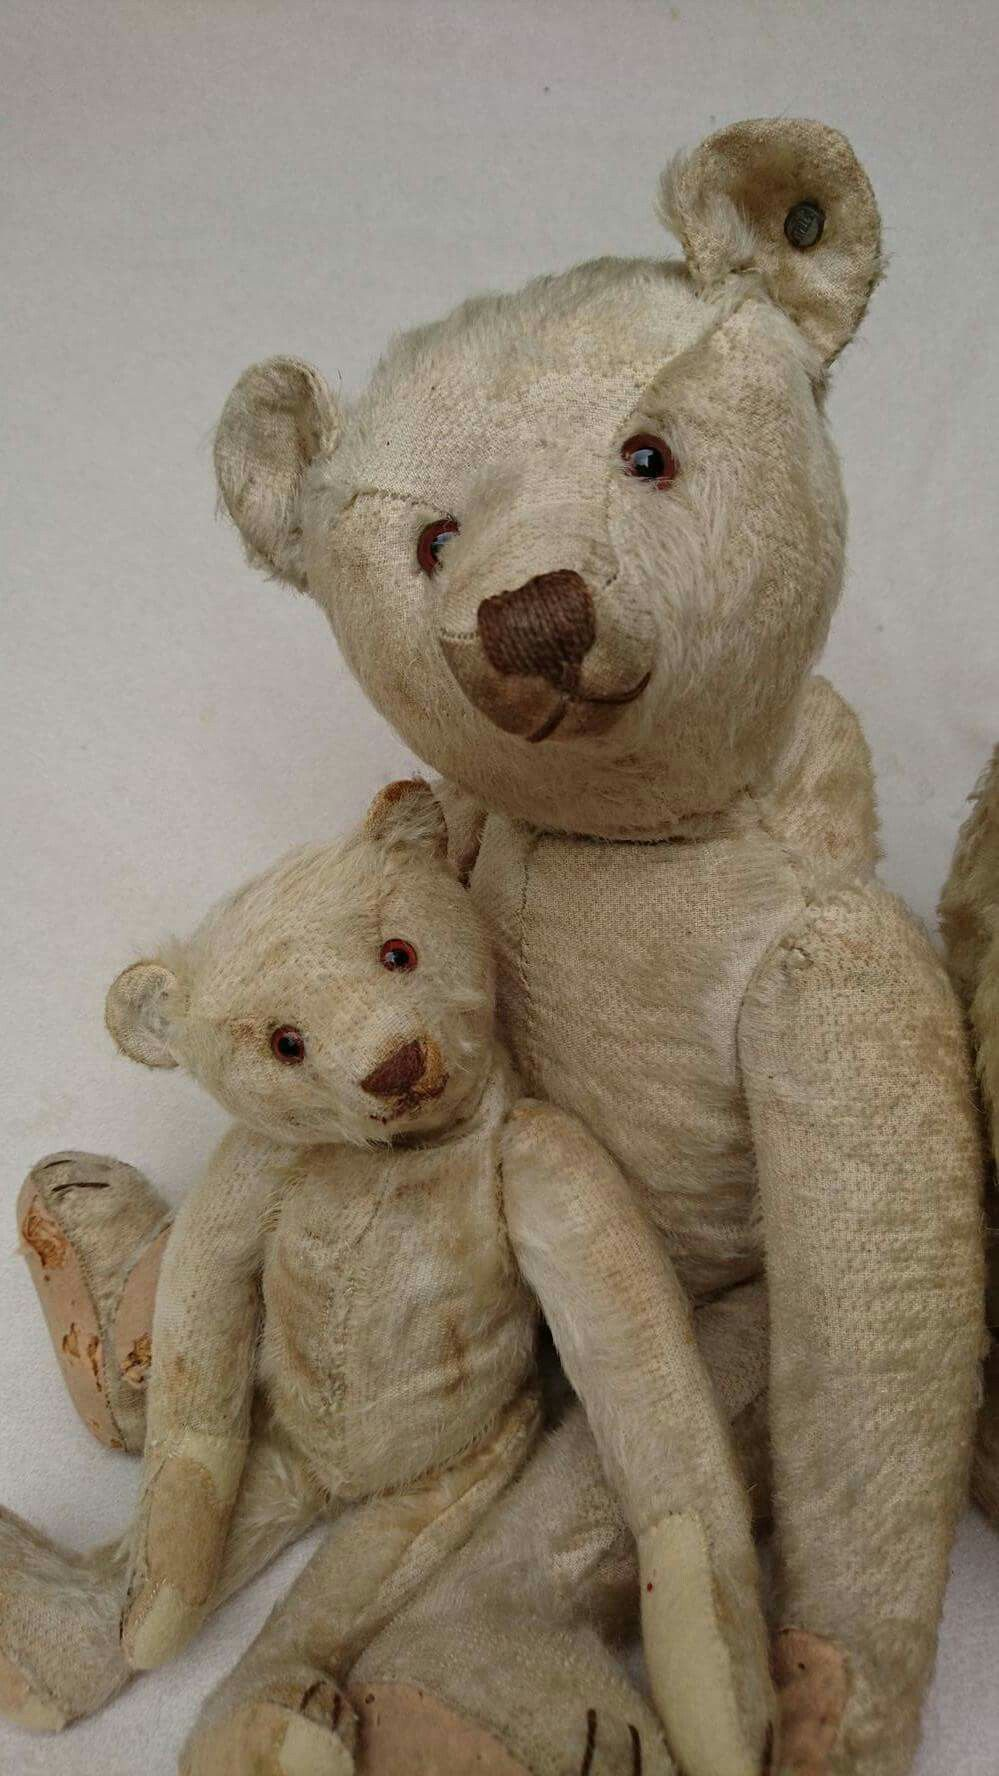 Look At The Sweet Faces On These Two Antique Steiff Bears